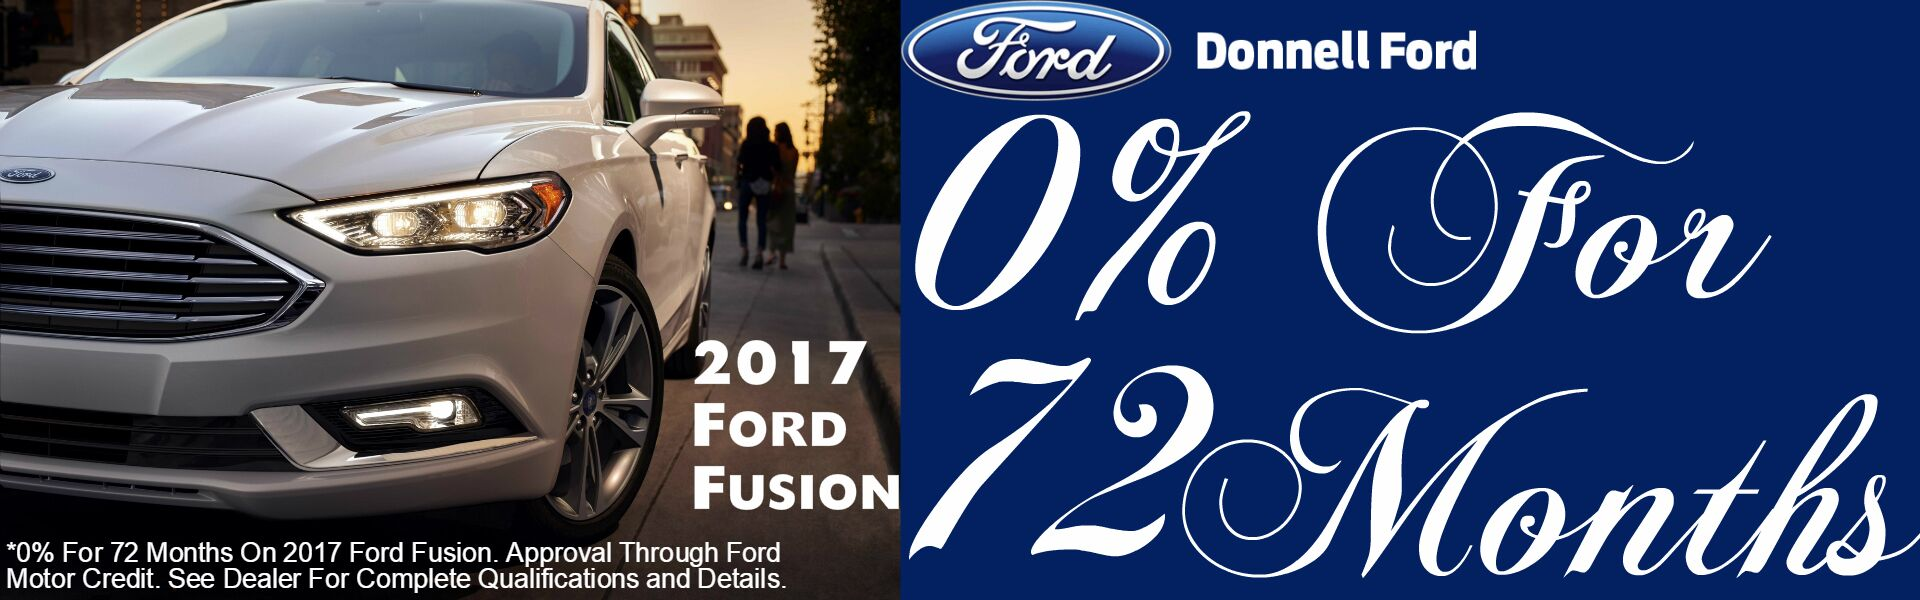 December 2016 Ford Fusion Banner